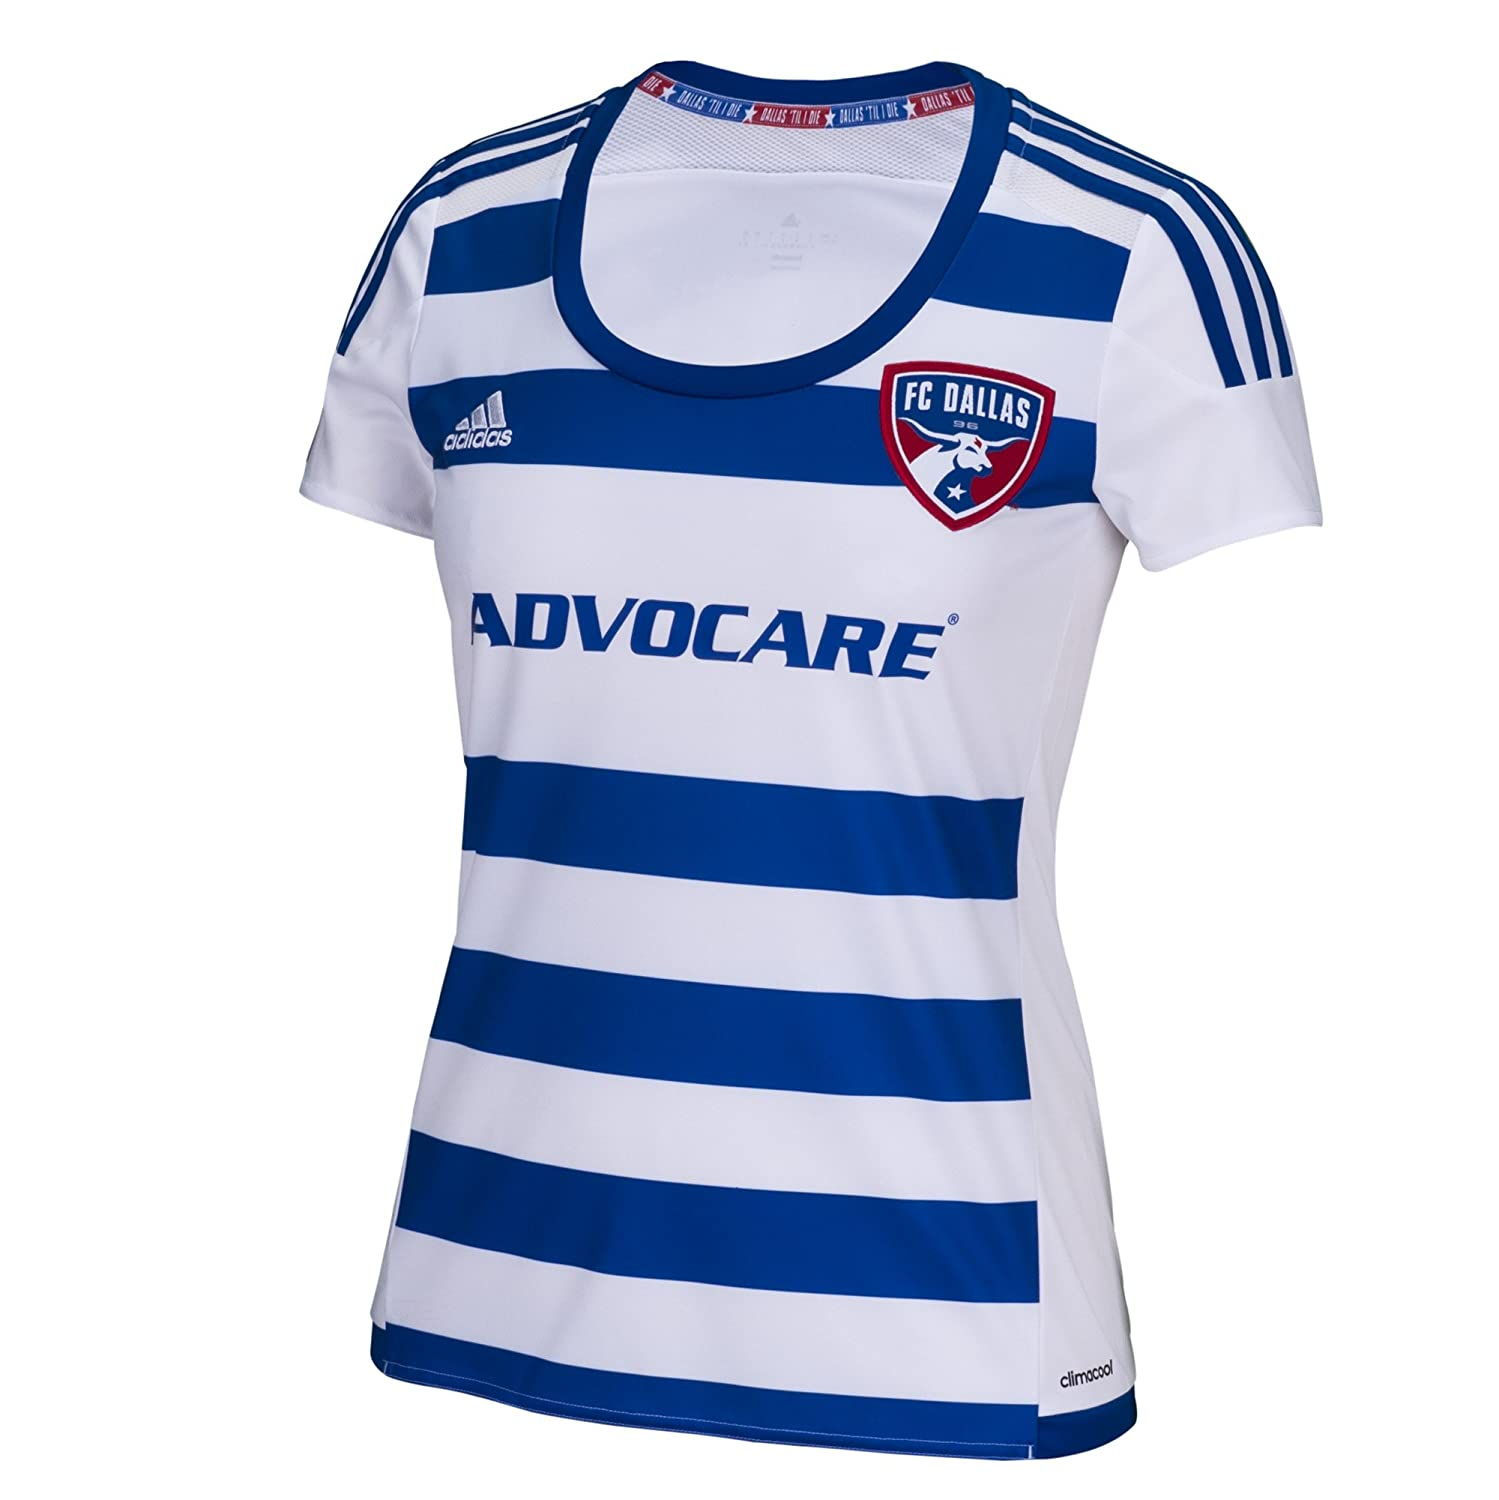 new concept cc332 5a753 Amazon.com : MLS FC Dallas Women's Replica Short Sleeve ...